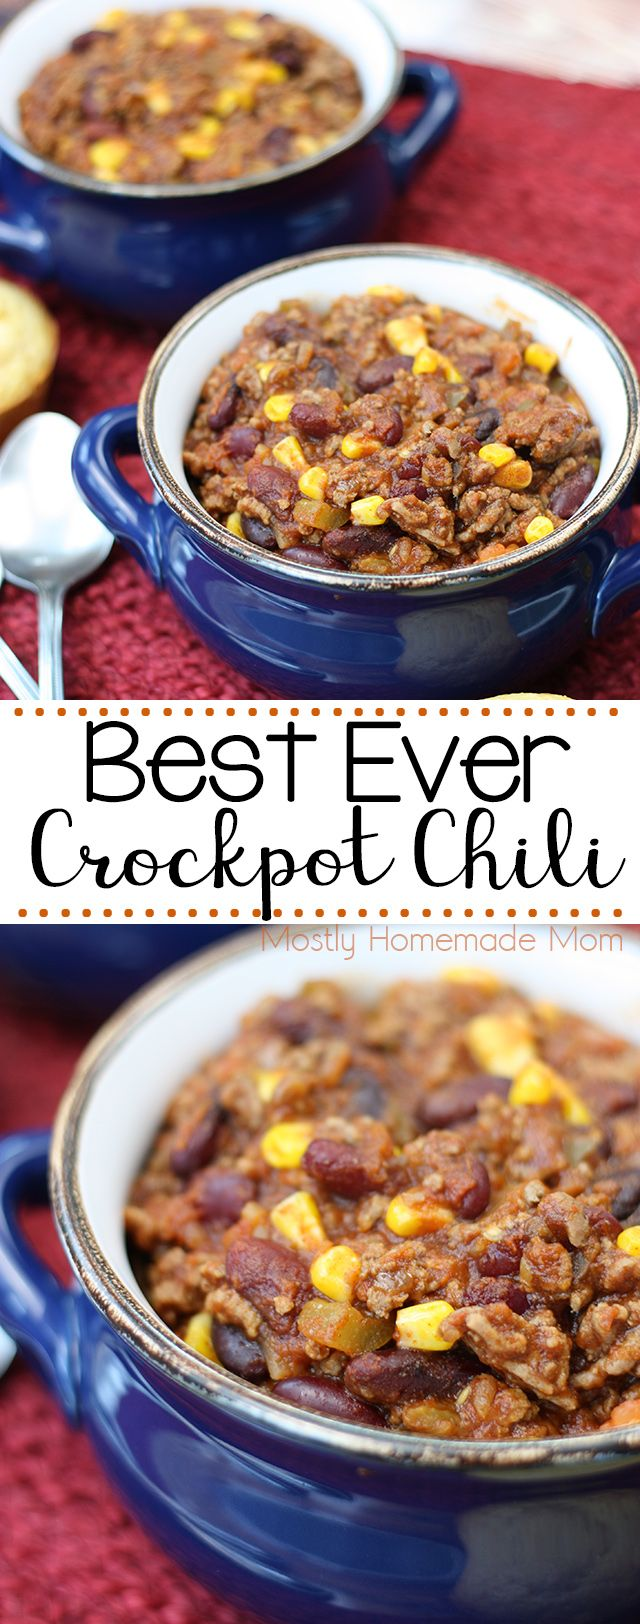 Best Crockpot Chili Video Mostly Homemade Mom Recipe Crockpot Chili Crockpot Chili Recipe Crockpot